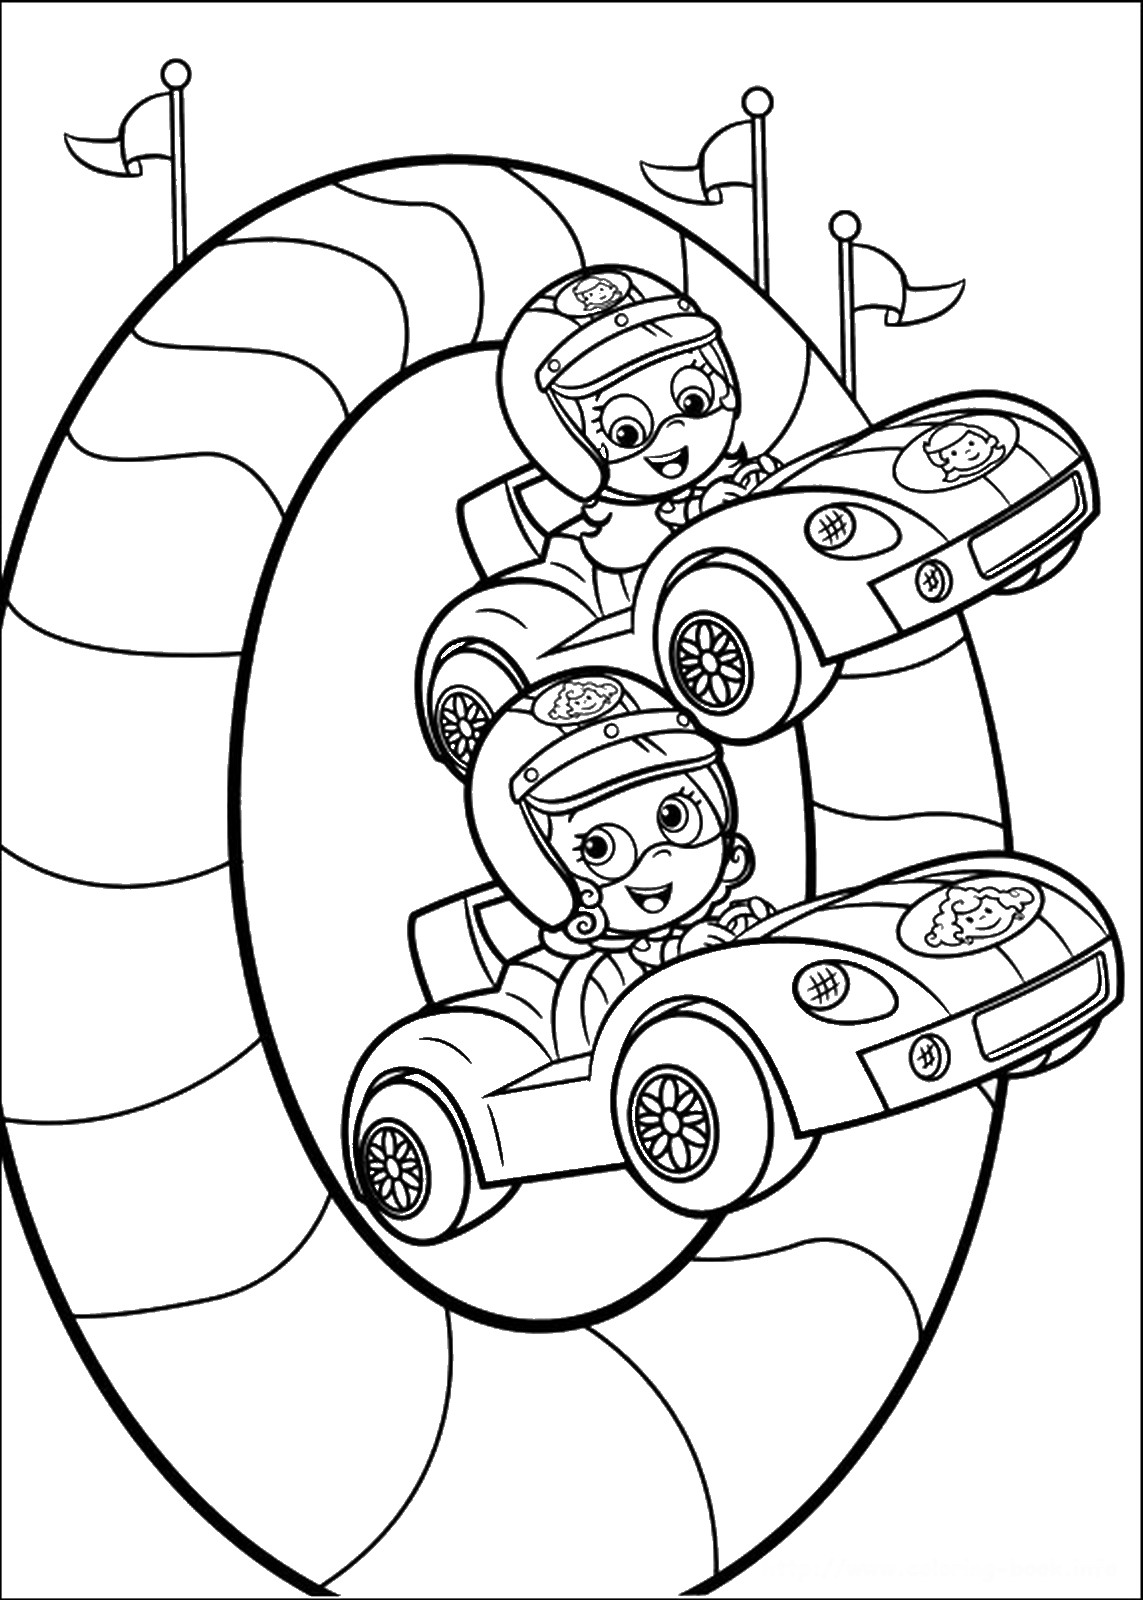 Bubble Guppies Coloring Pages Best Coloring Pages For Kids Colouring Pages Print